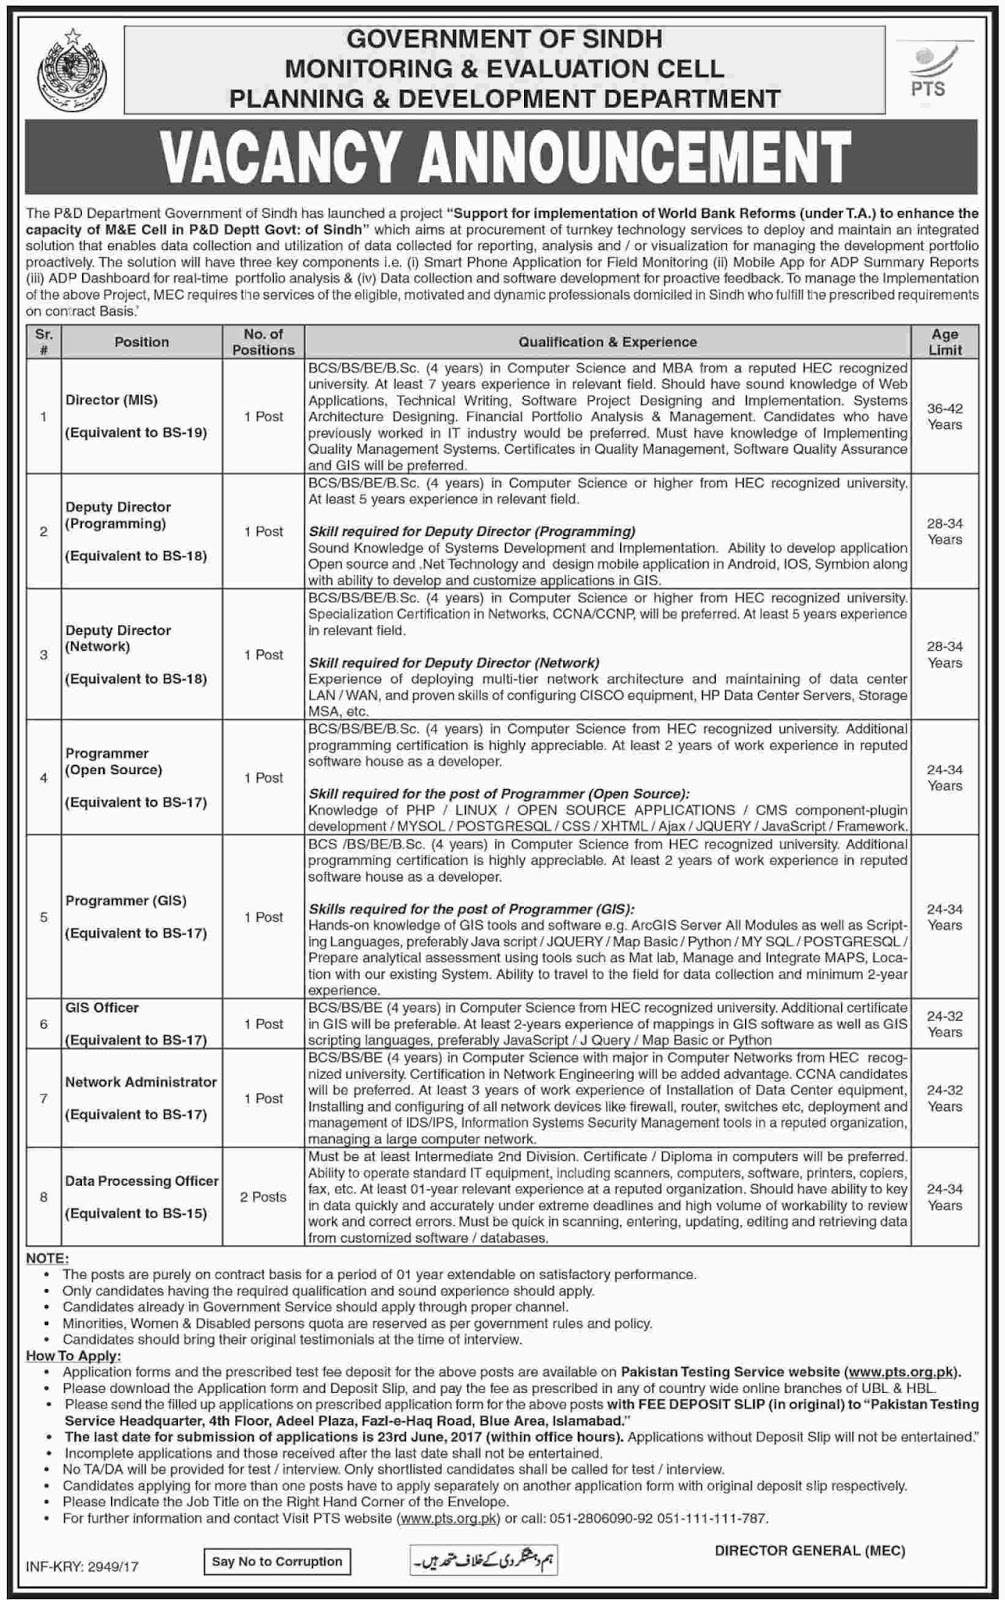 Jobs Planning And Development Department Govt Of Sindh 5 June 2017